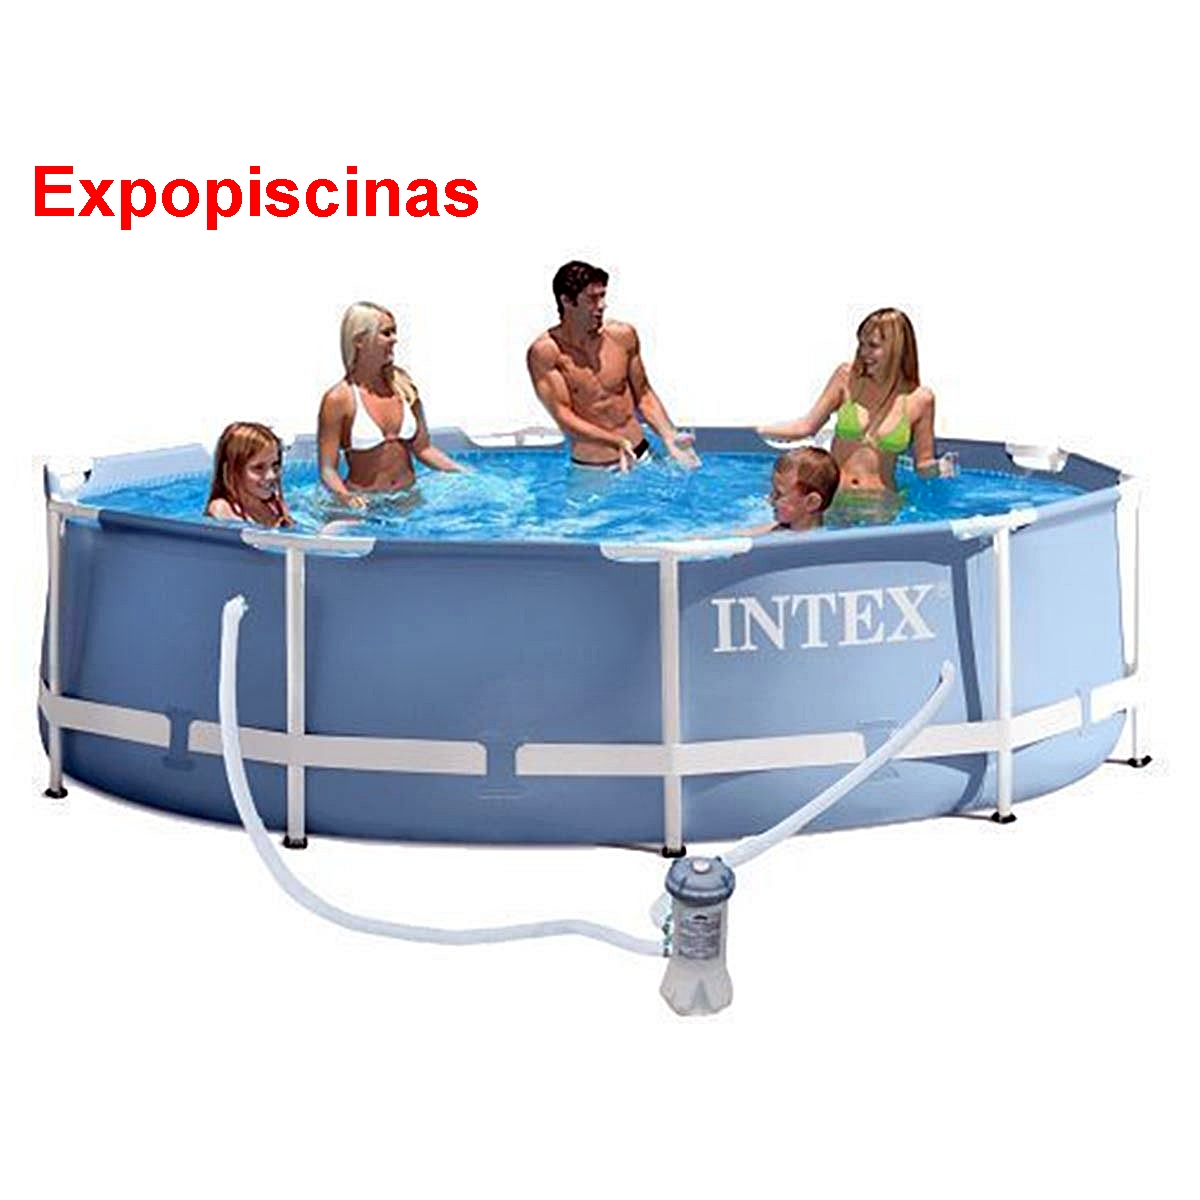 Piscina De Plastico 12000 Litros Intex Expo Piscinas